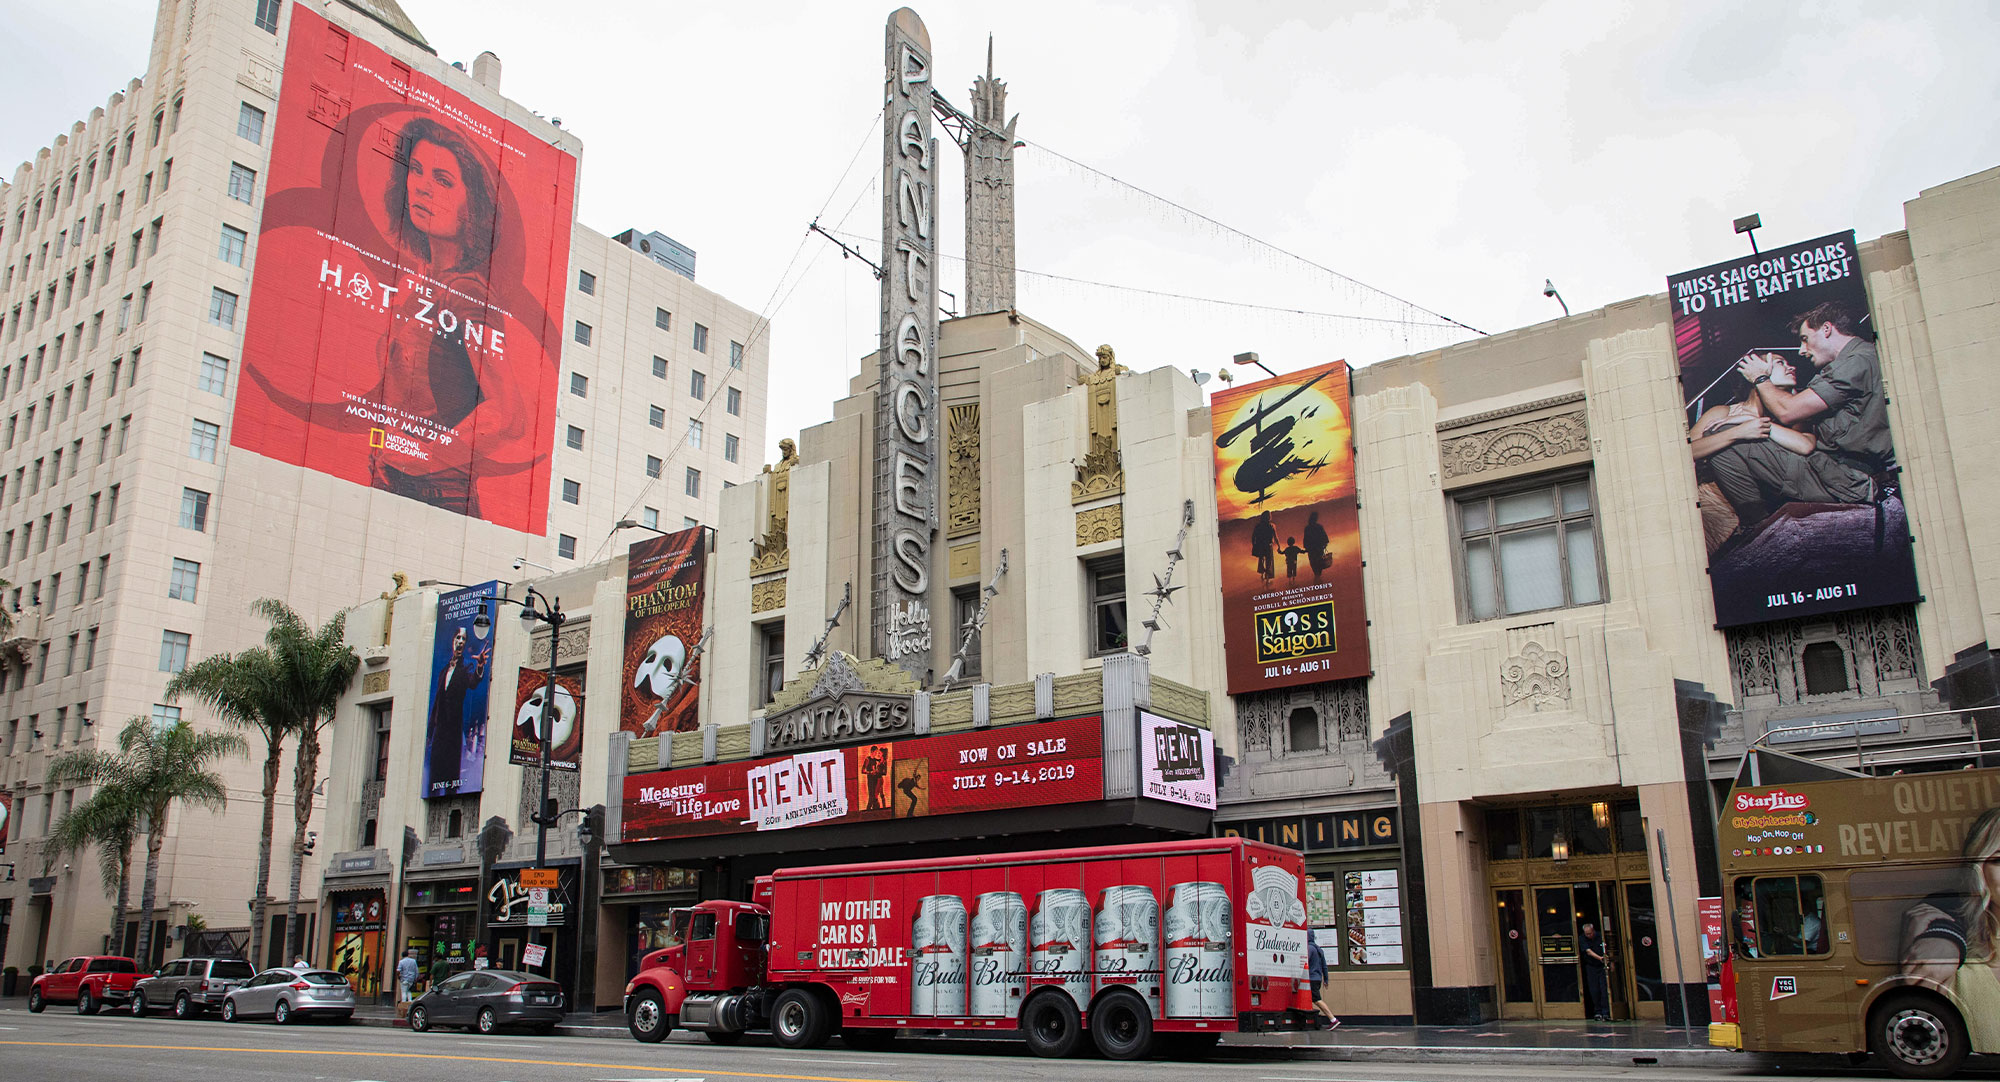 Pantages Theaters Showcase Image